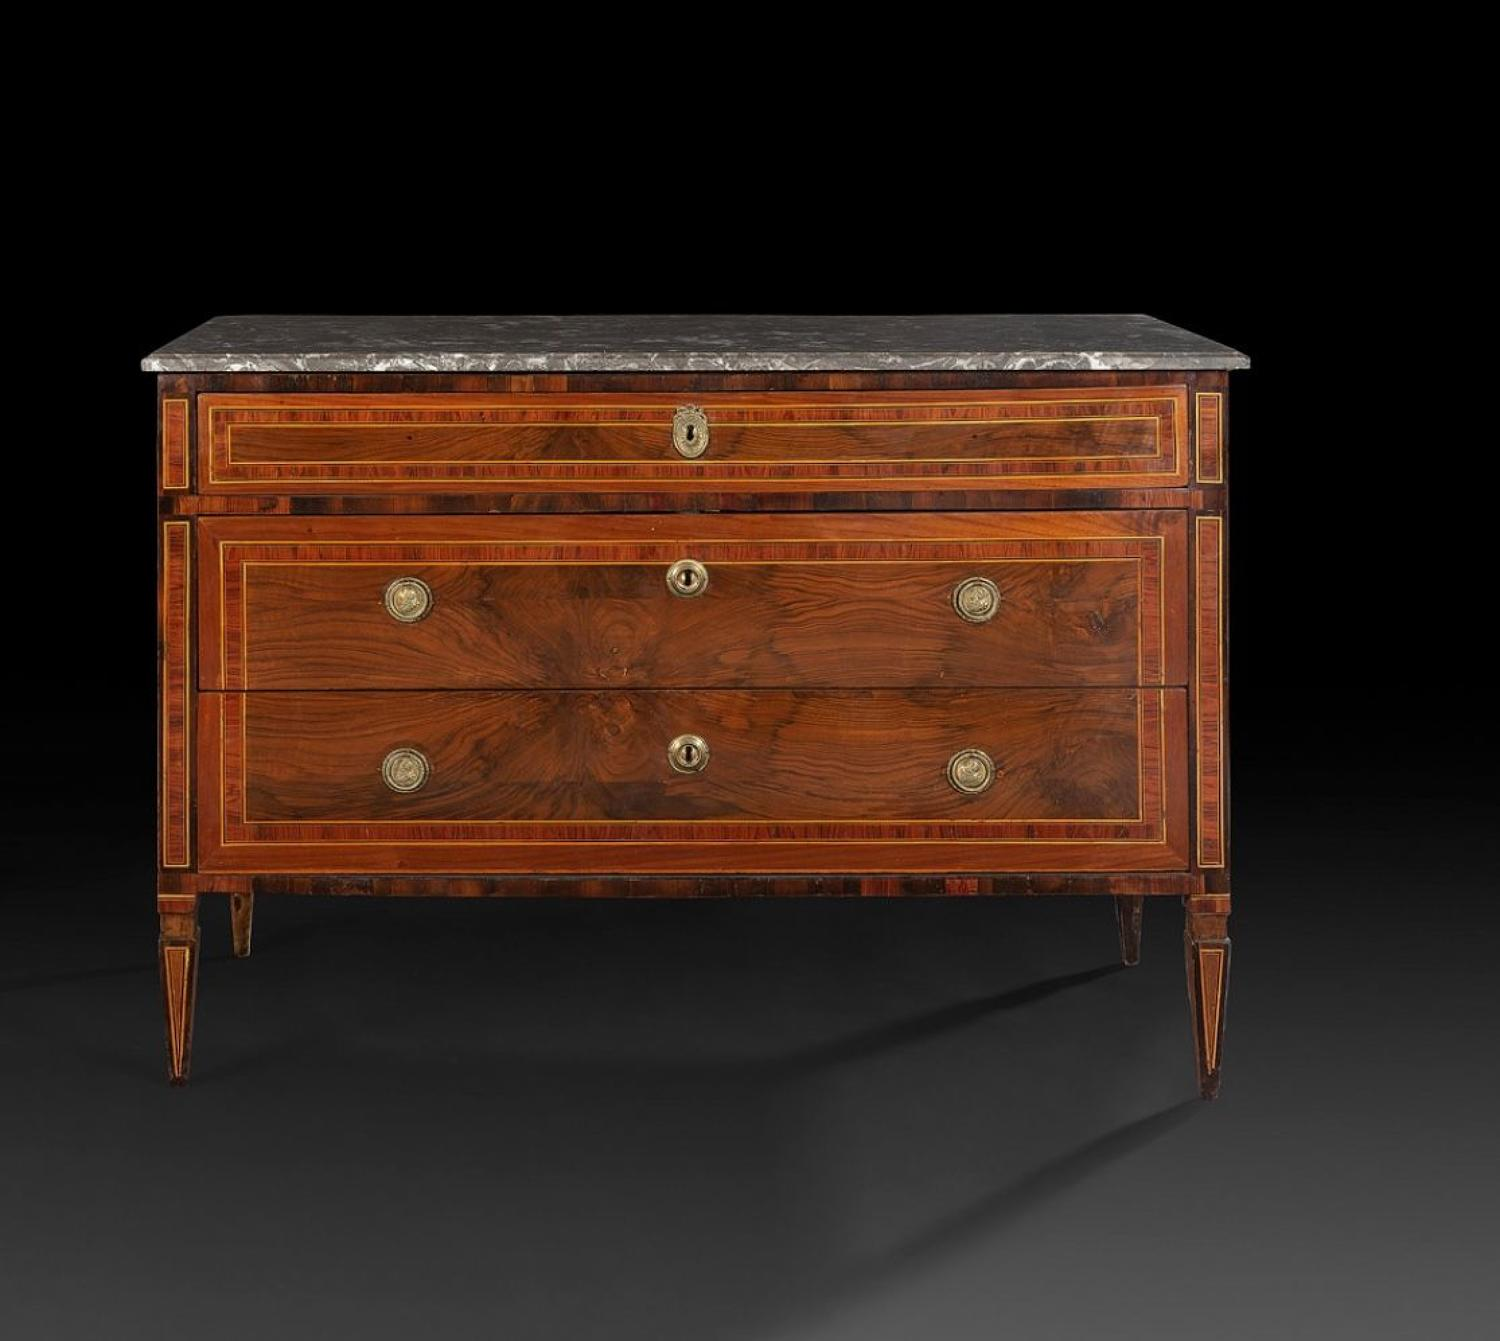 AN 18TH CENTURY  ITALIAN PARQUETRY COMMODE